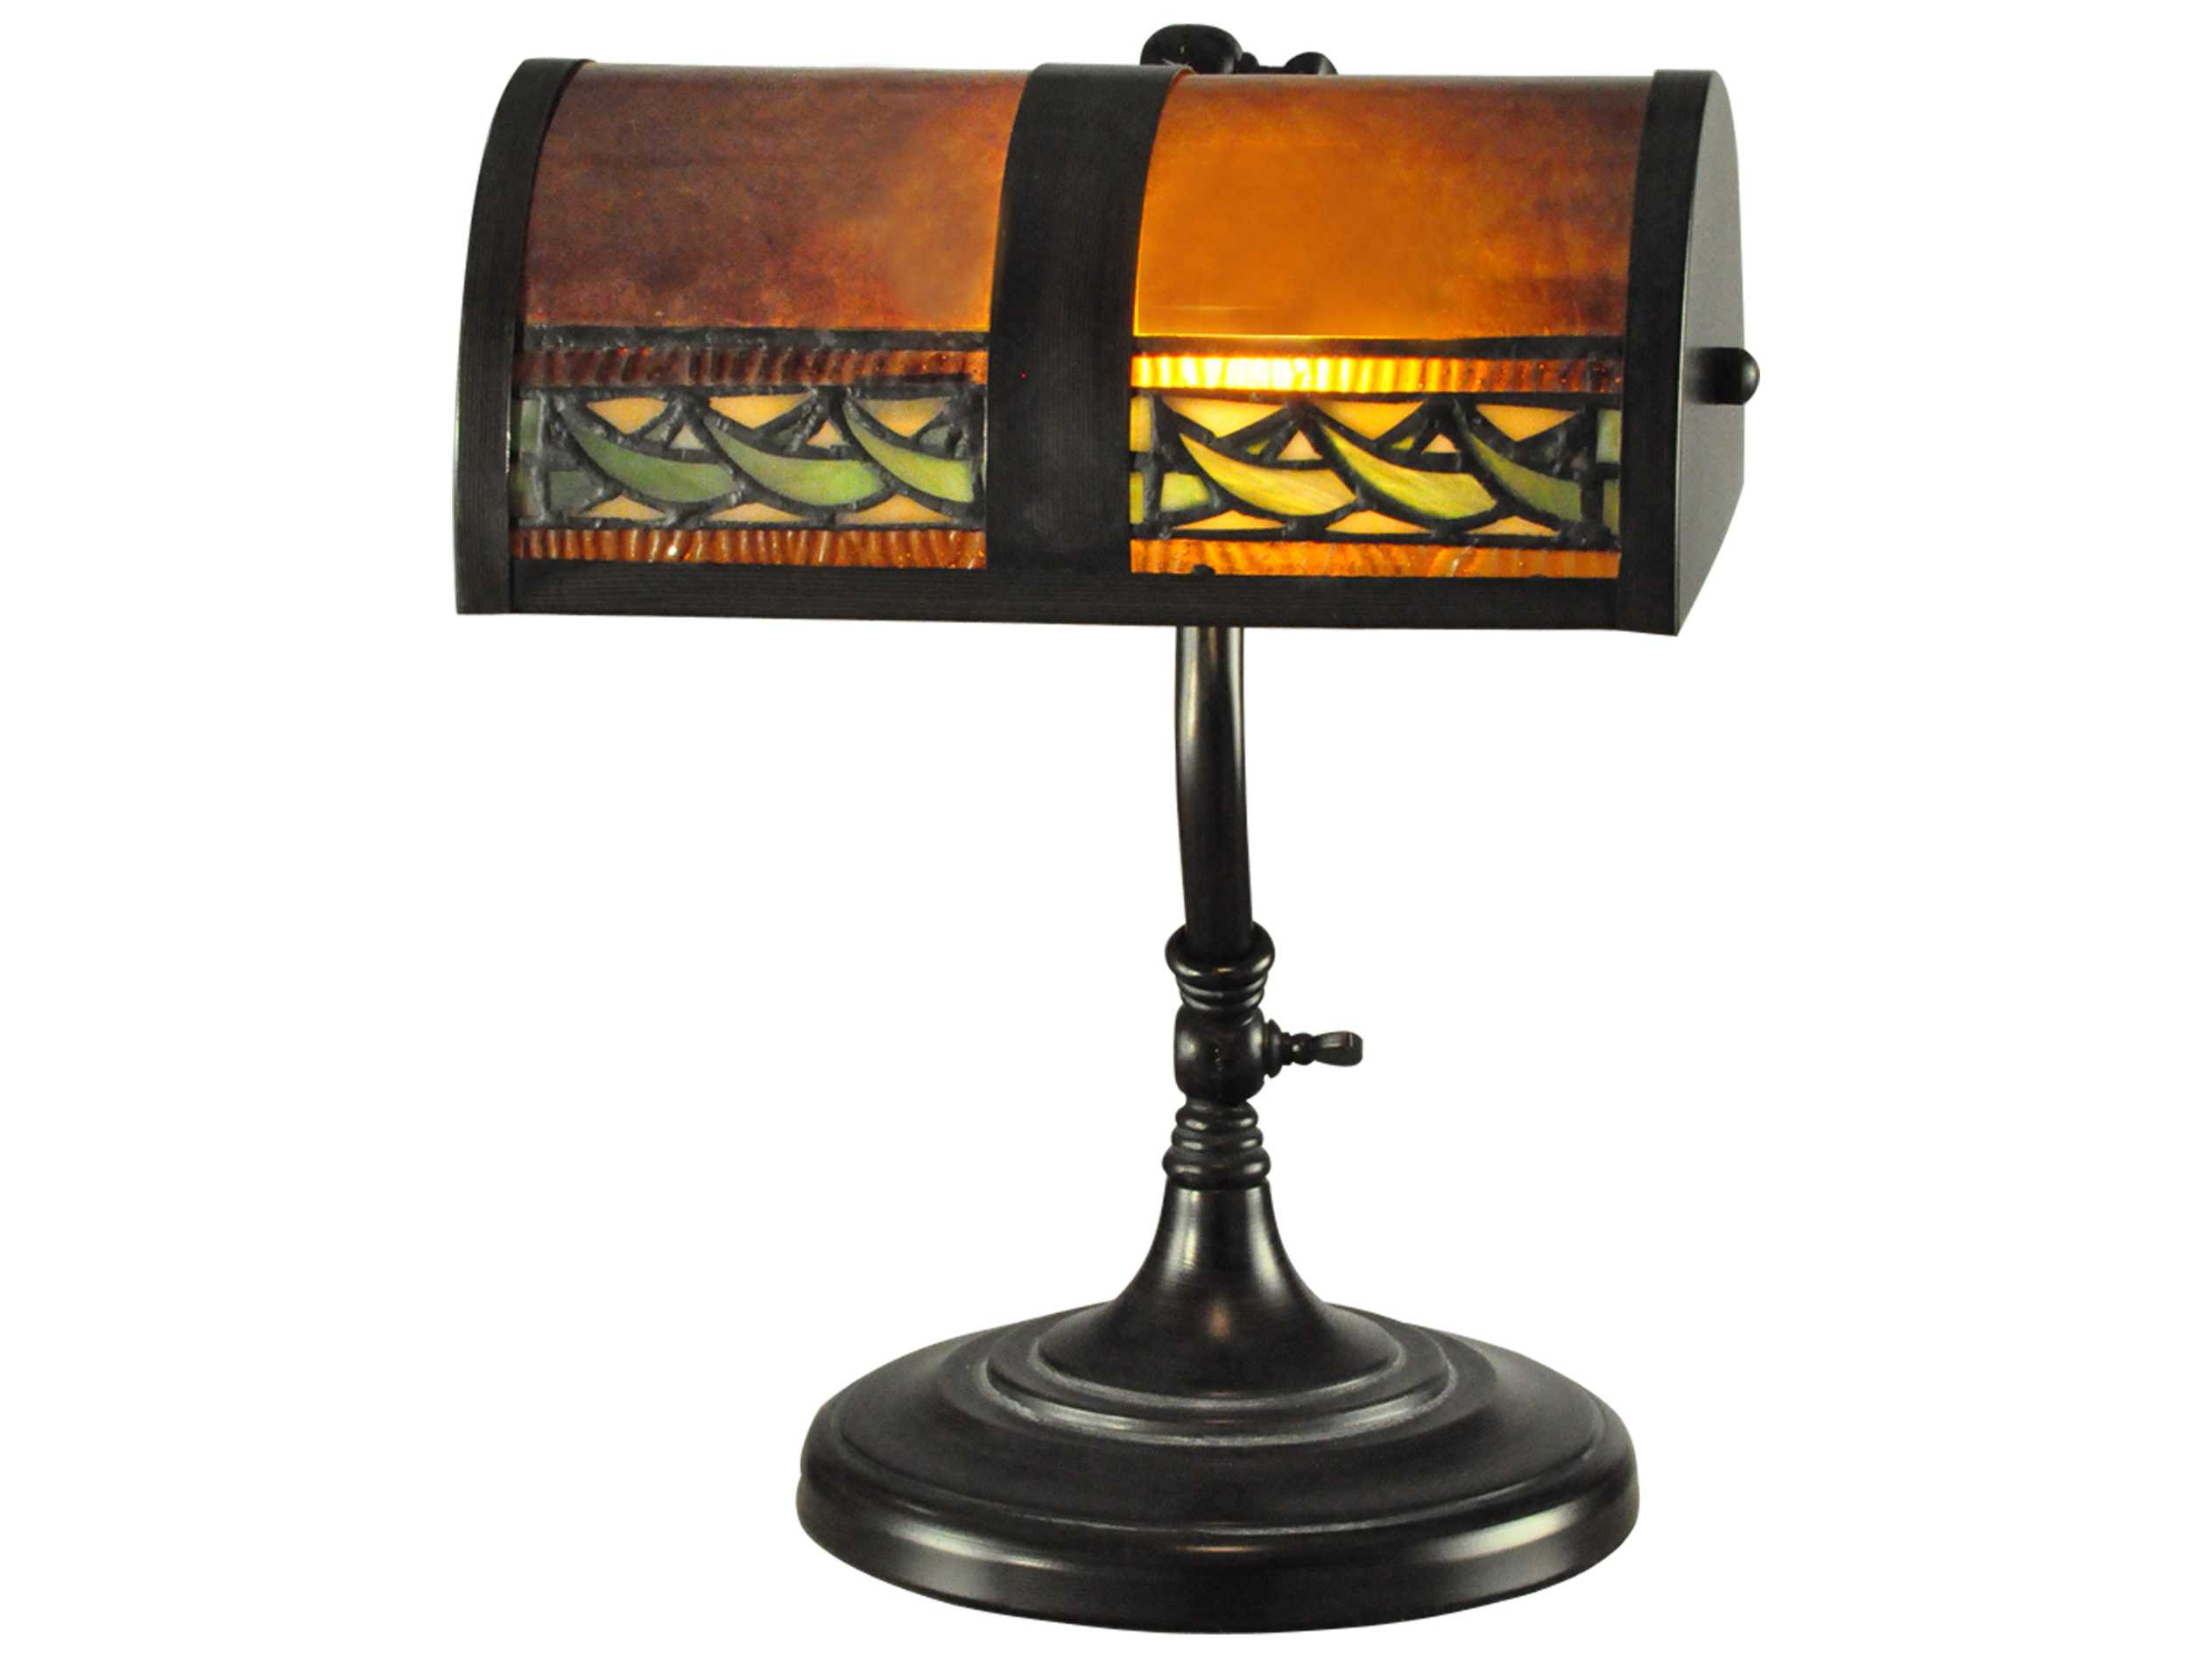 Best ideas about Tiffany Desk Lamp . Save or Pin Dale Tiffany Egyptian Desk Lamp Table Lamp Now.